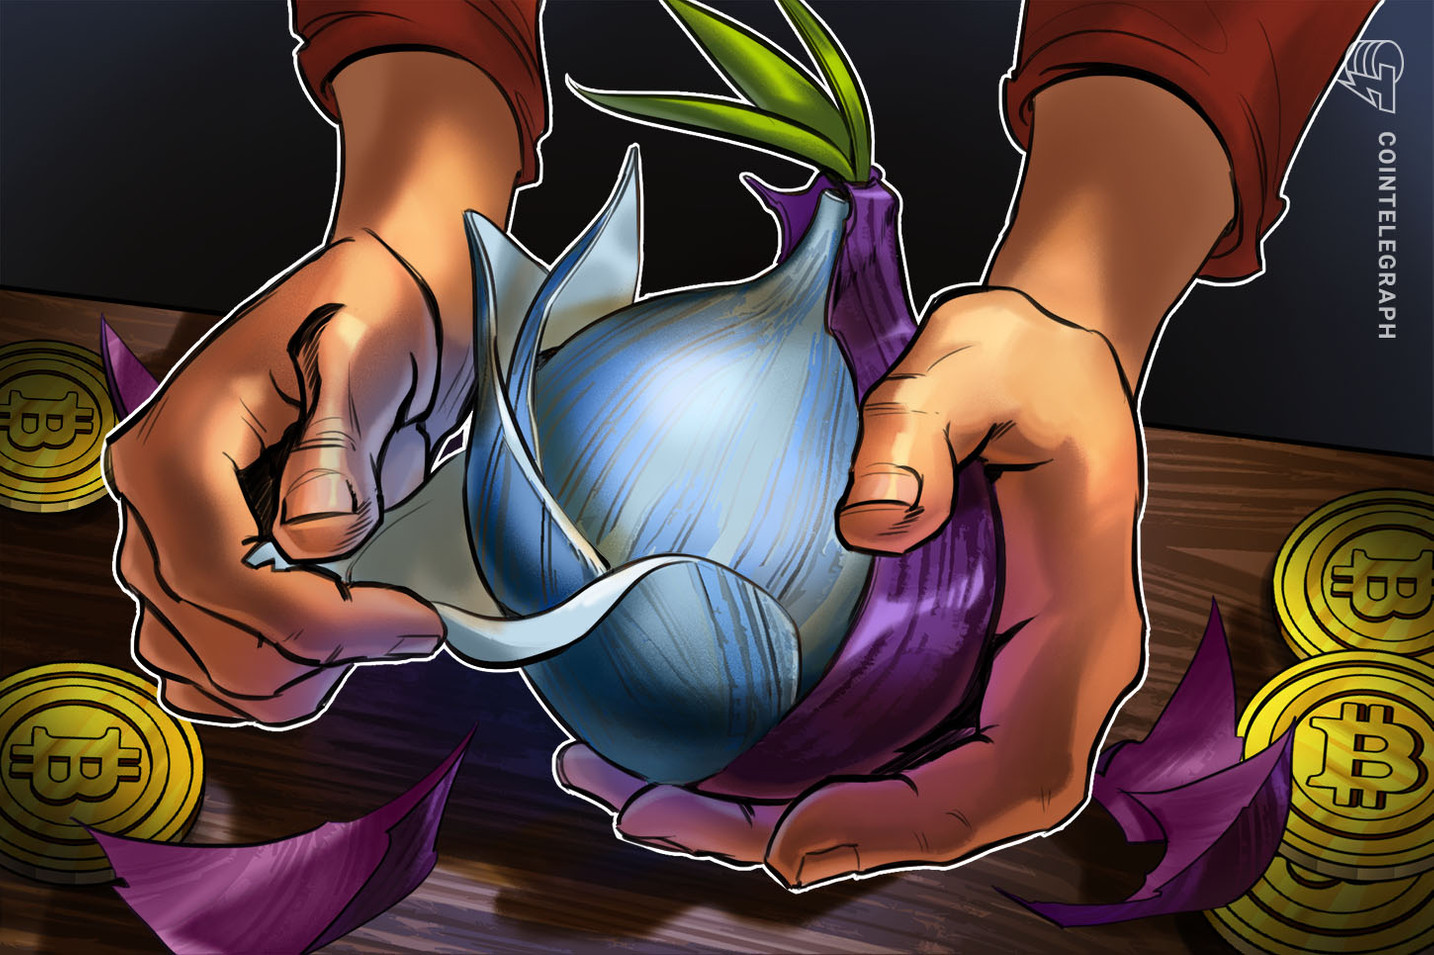 LocalBitcoins: Tor Browser Users at Risk of Losing Their Bitcoins